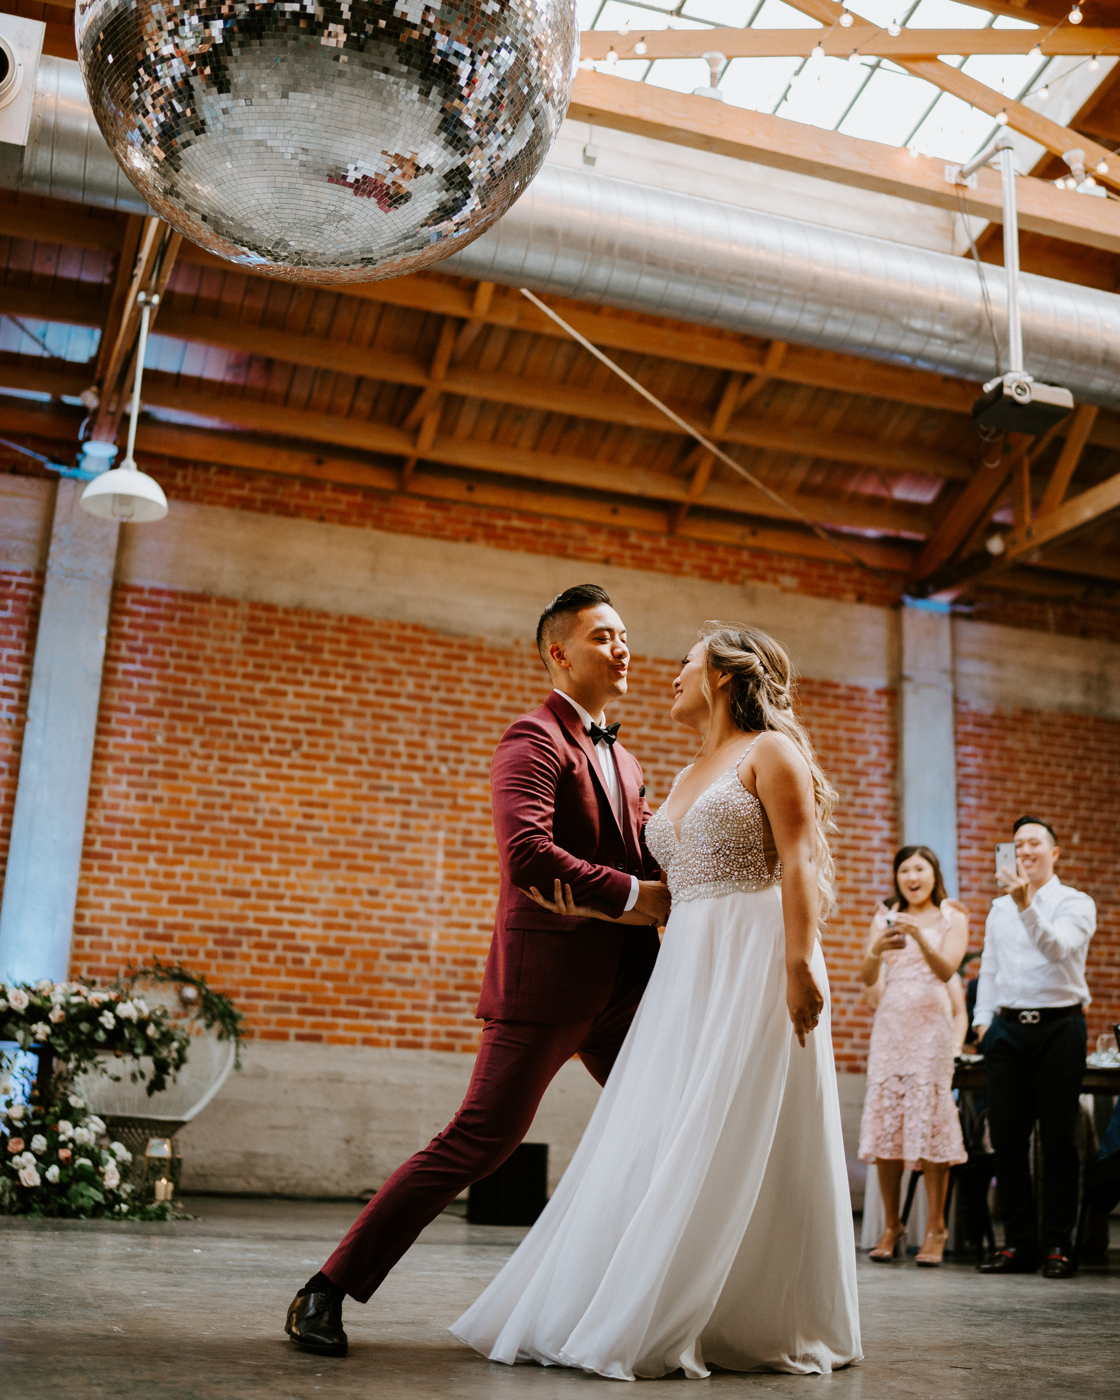 20190901_Narisa_Kyle_Wedding_Sneek-192.jpg